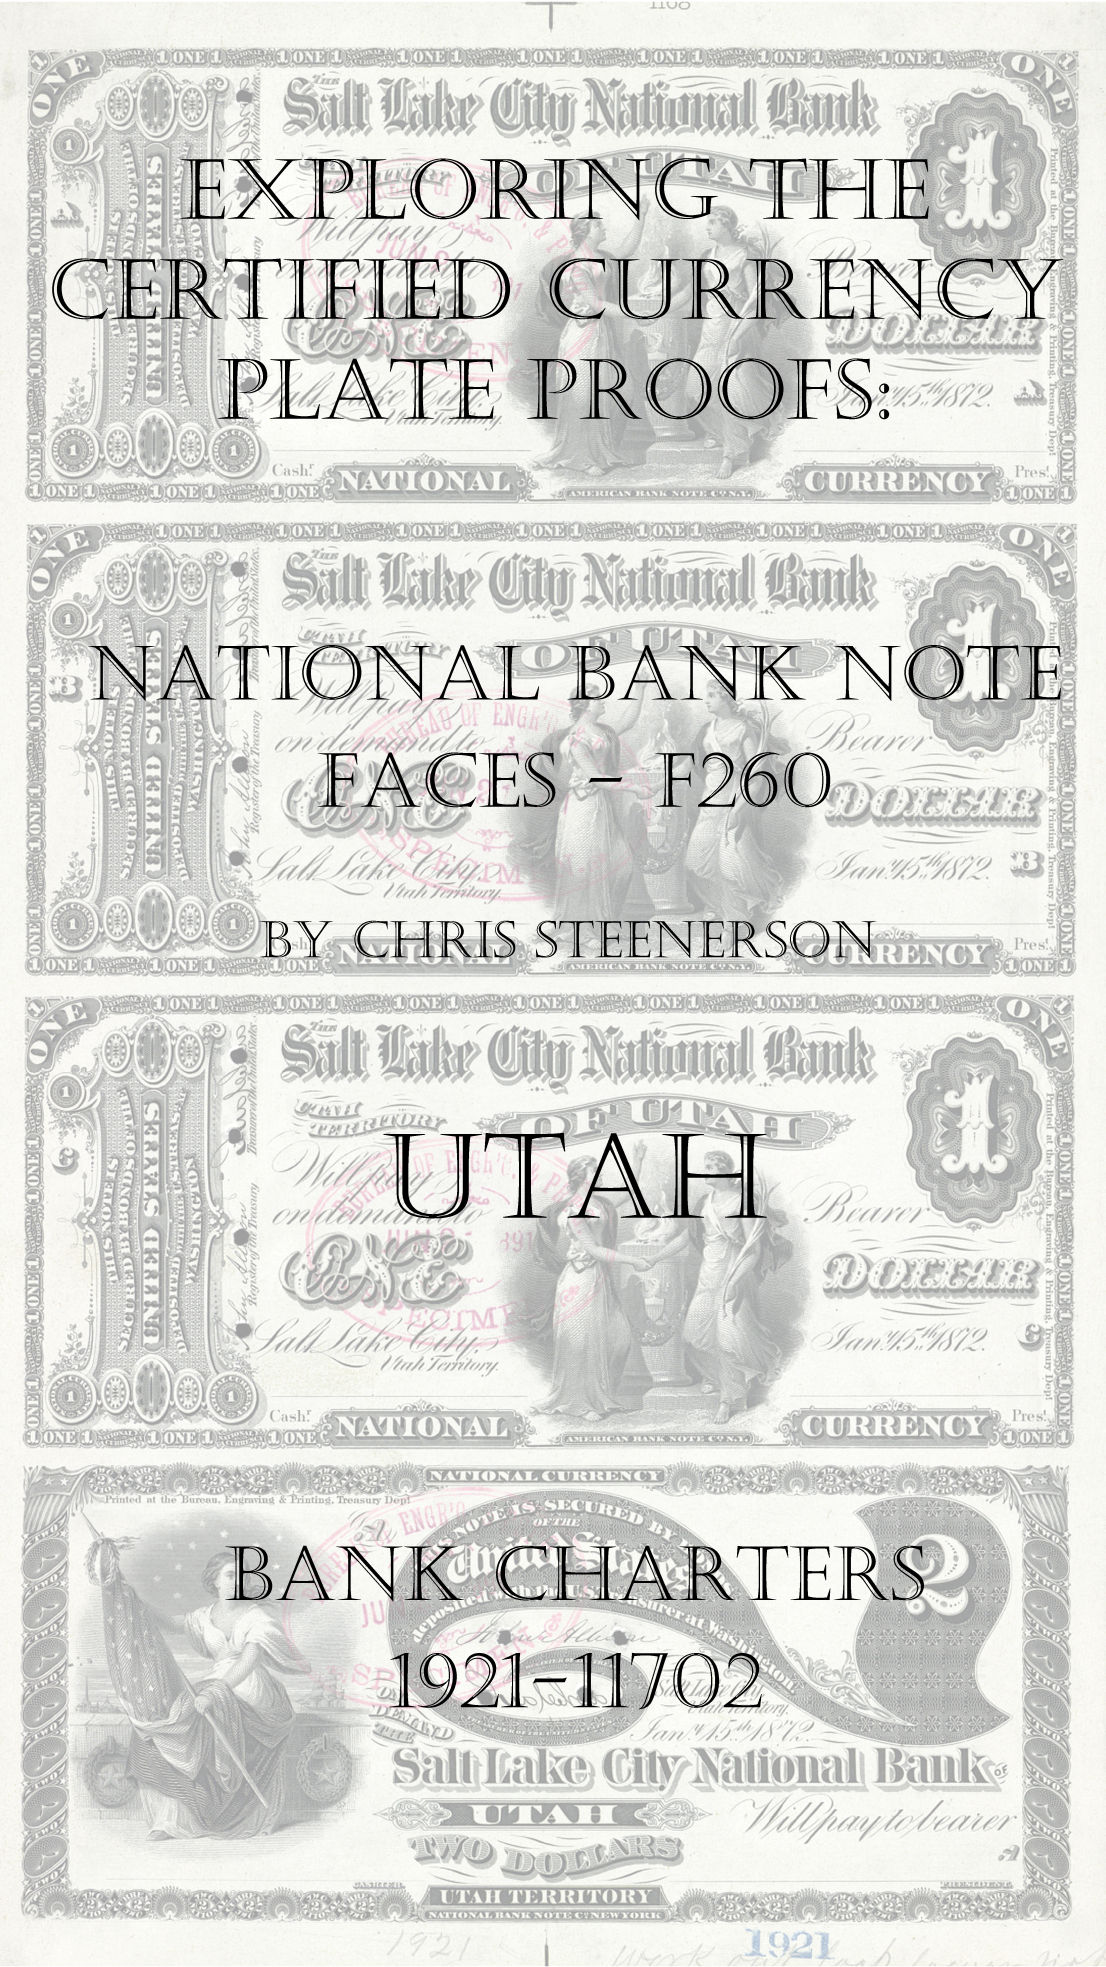 Utah National Bank Note Currency Proofs